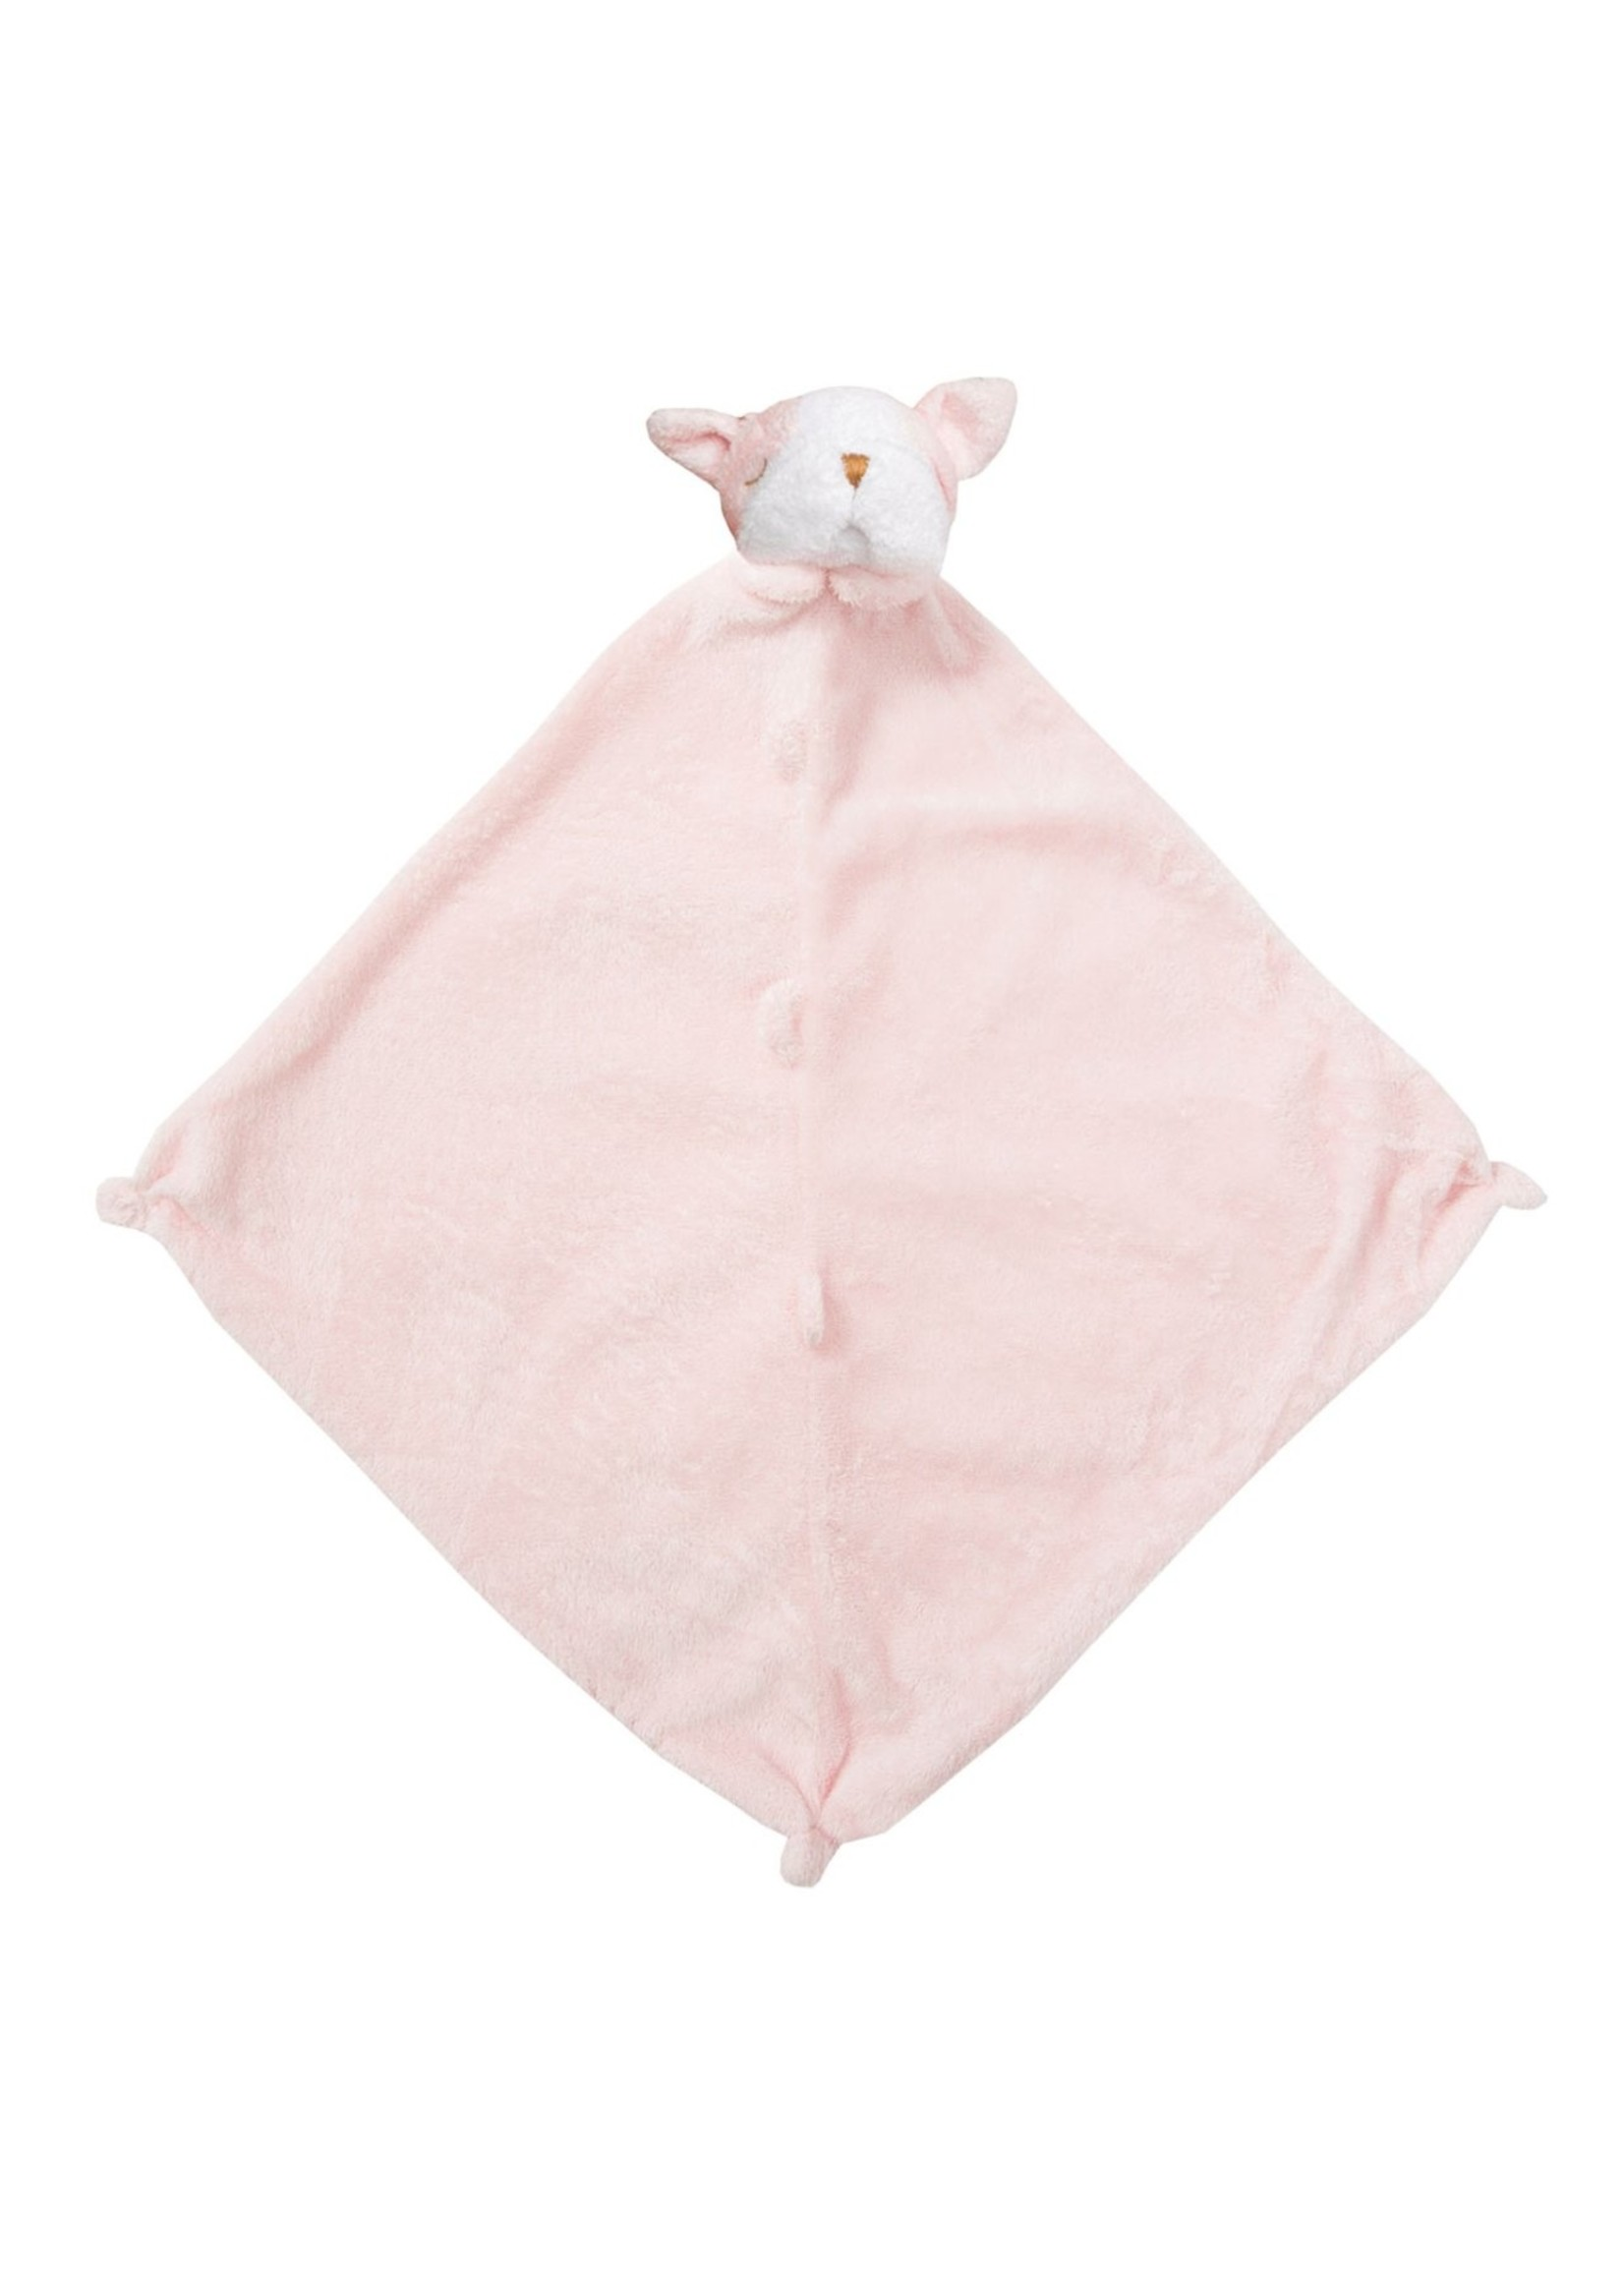 Angel Dear Angel Dear Blankie - Pink Bulldog